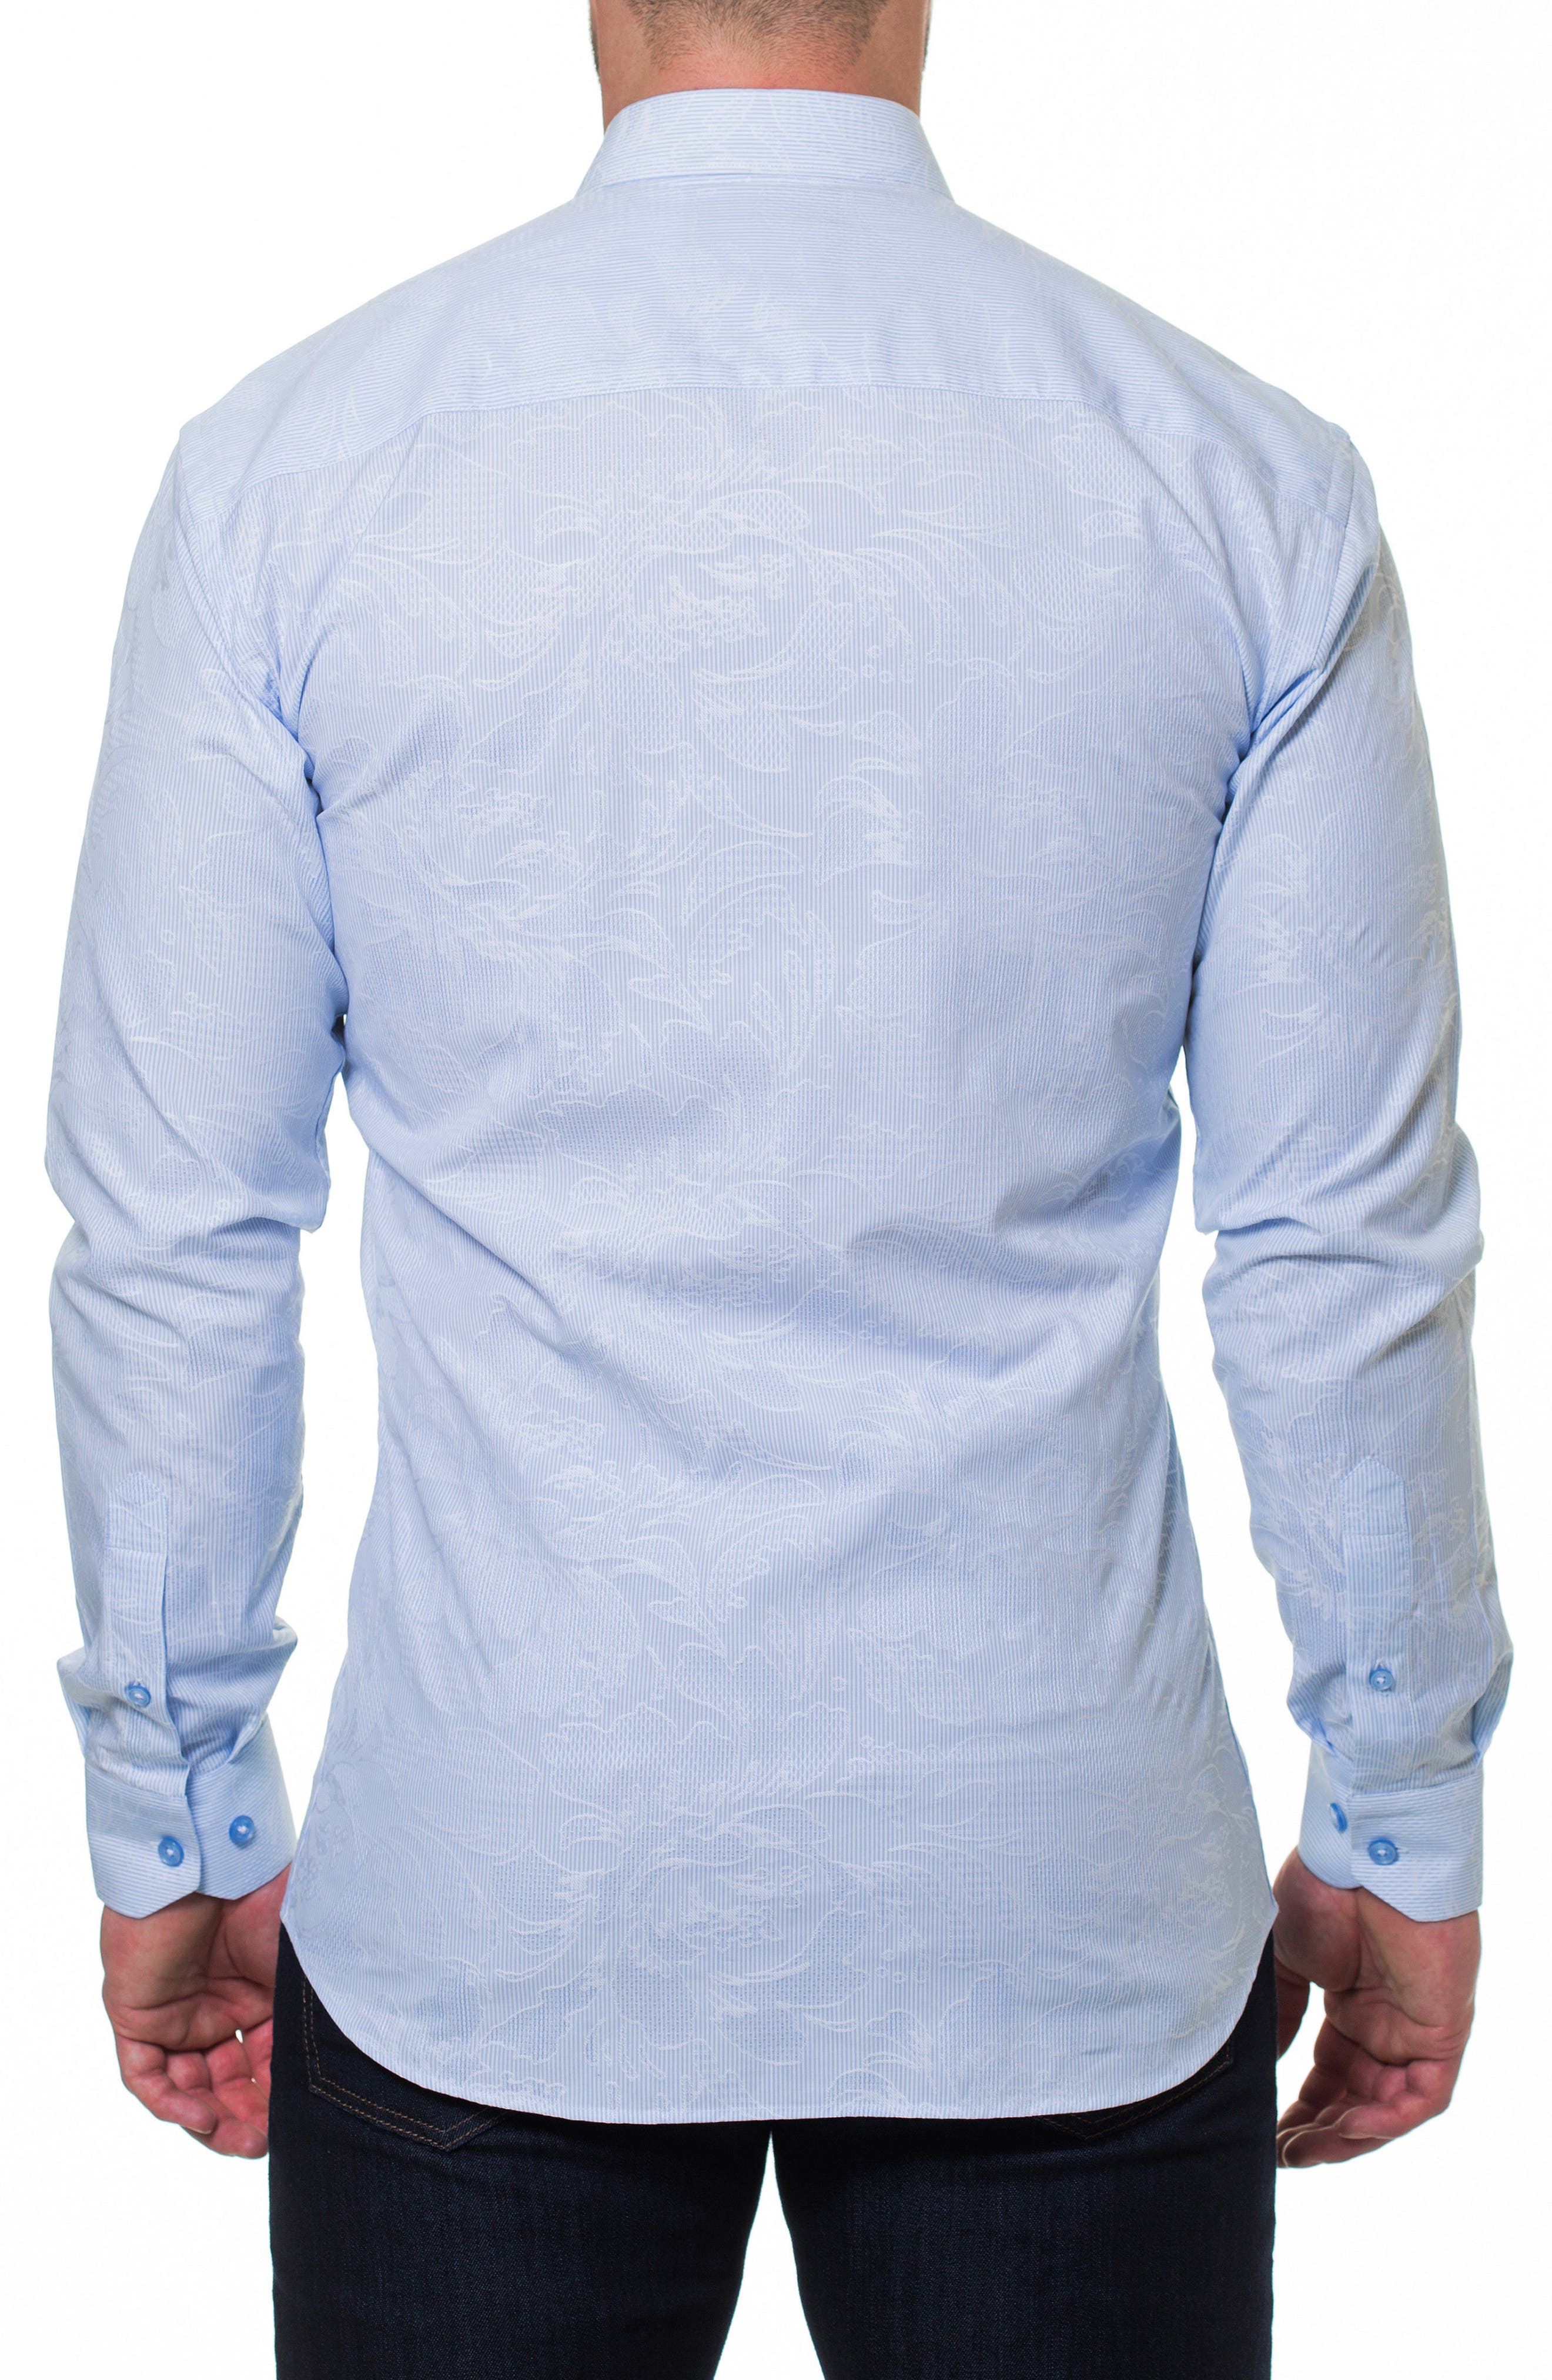 Luxor Flow Sport Shirt,                             Alternate thumbnail 2, color,                             420